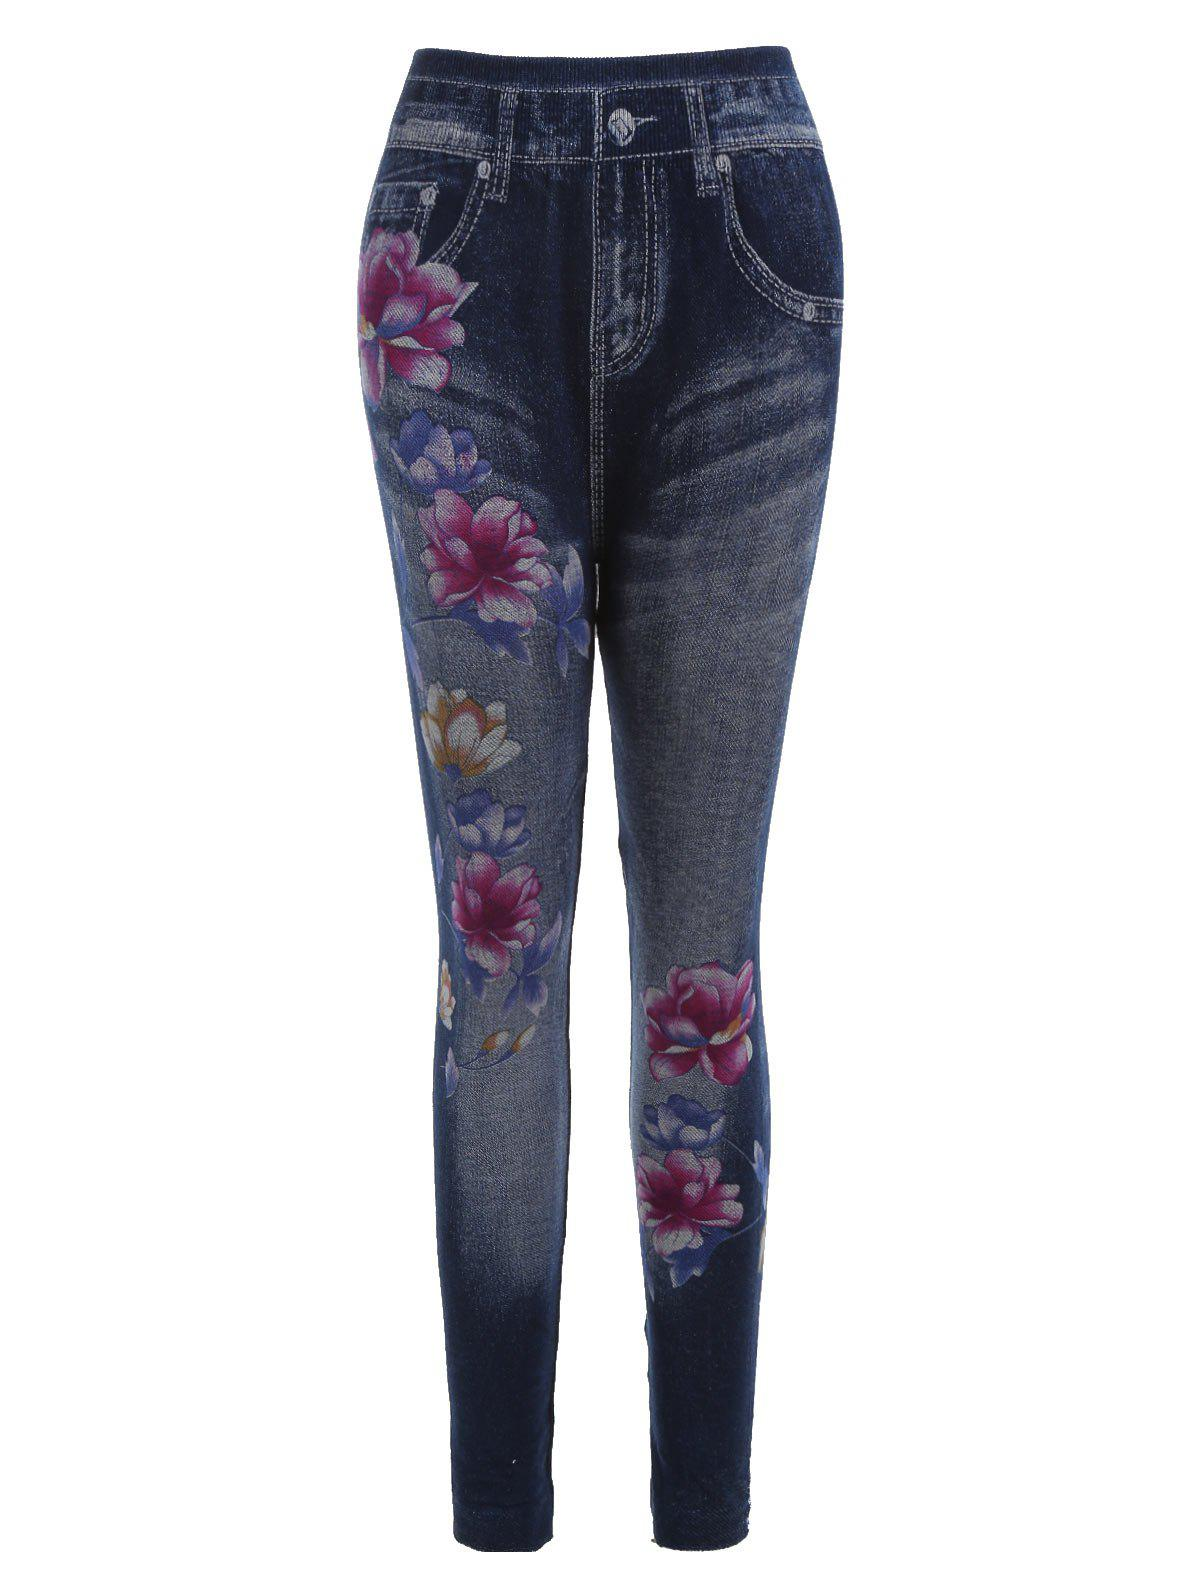 dc01008bcf29b 45% OFF] Lotus Flower Print Faux Denim Leggings | Rosegal